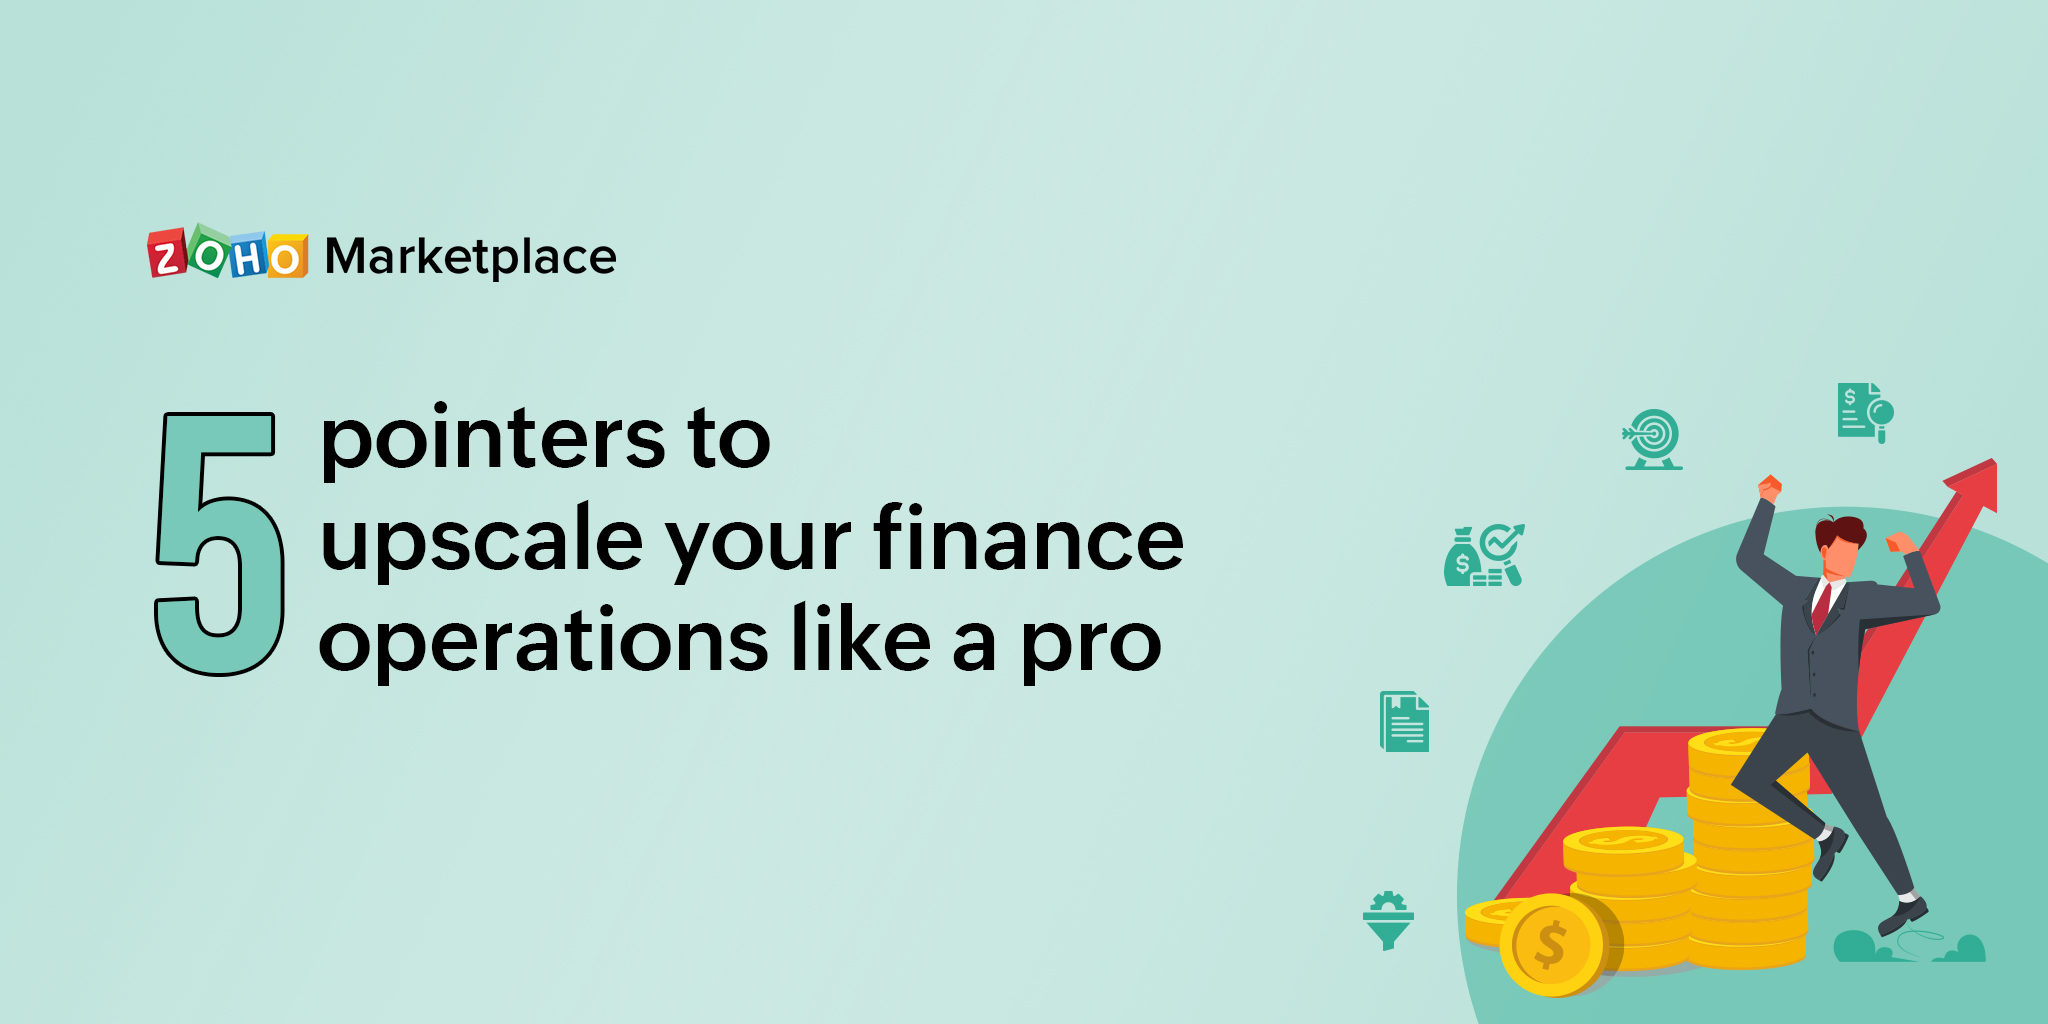 ProTips: 5 pointers to upscale your finance operations like a pro